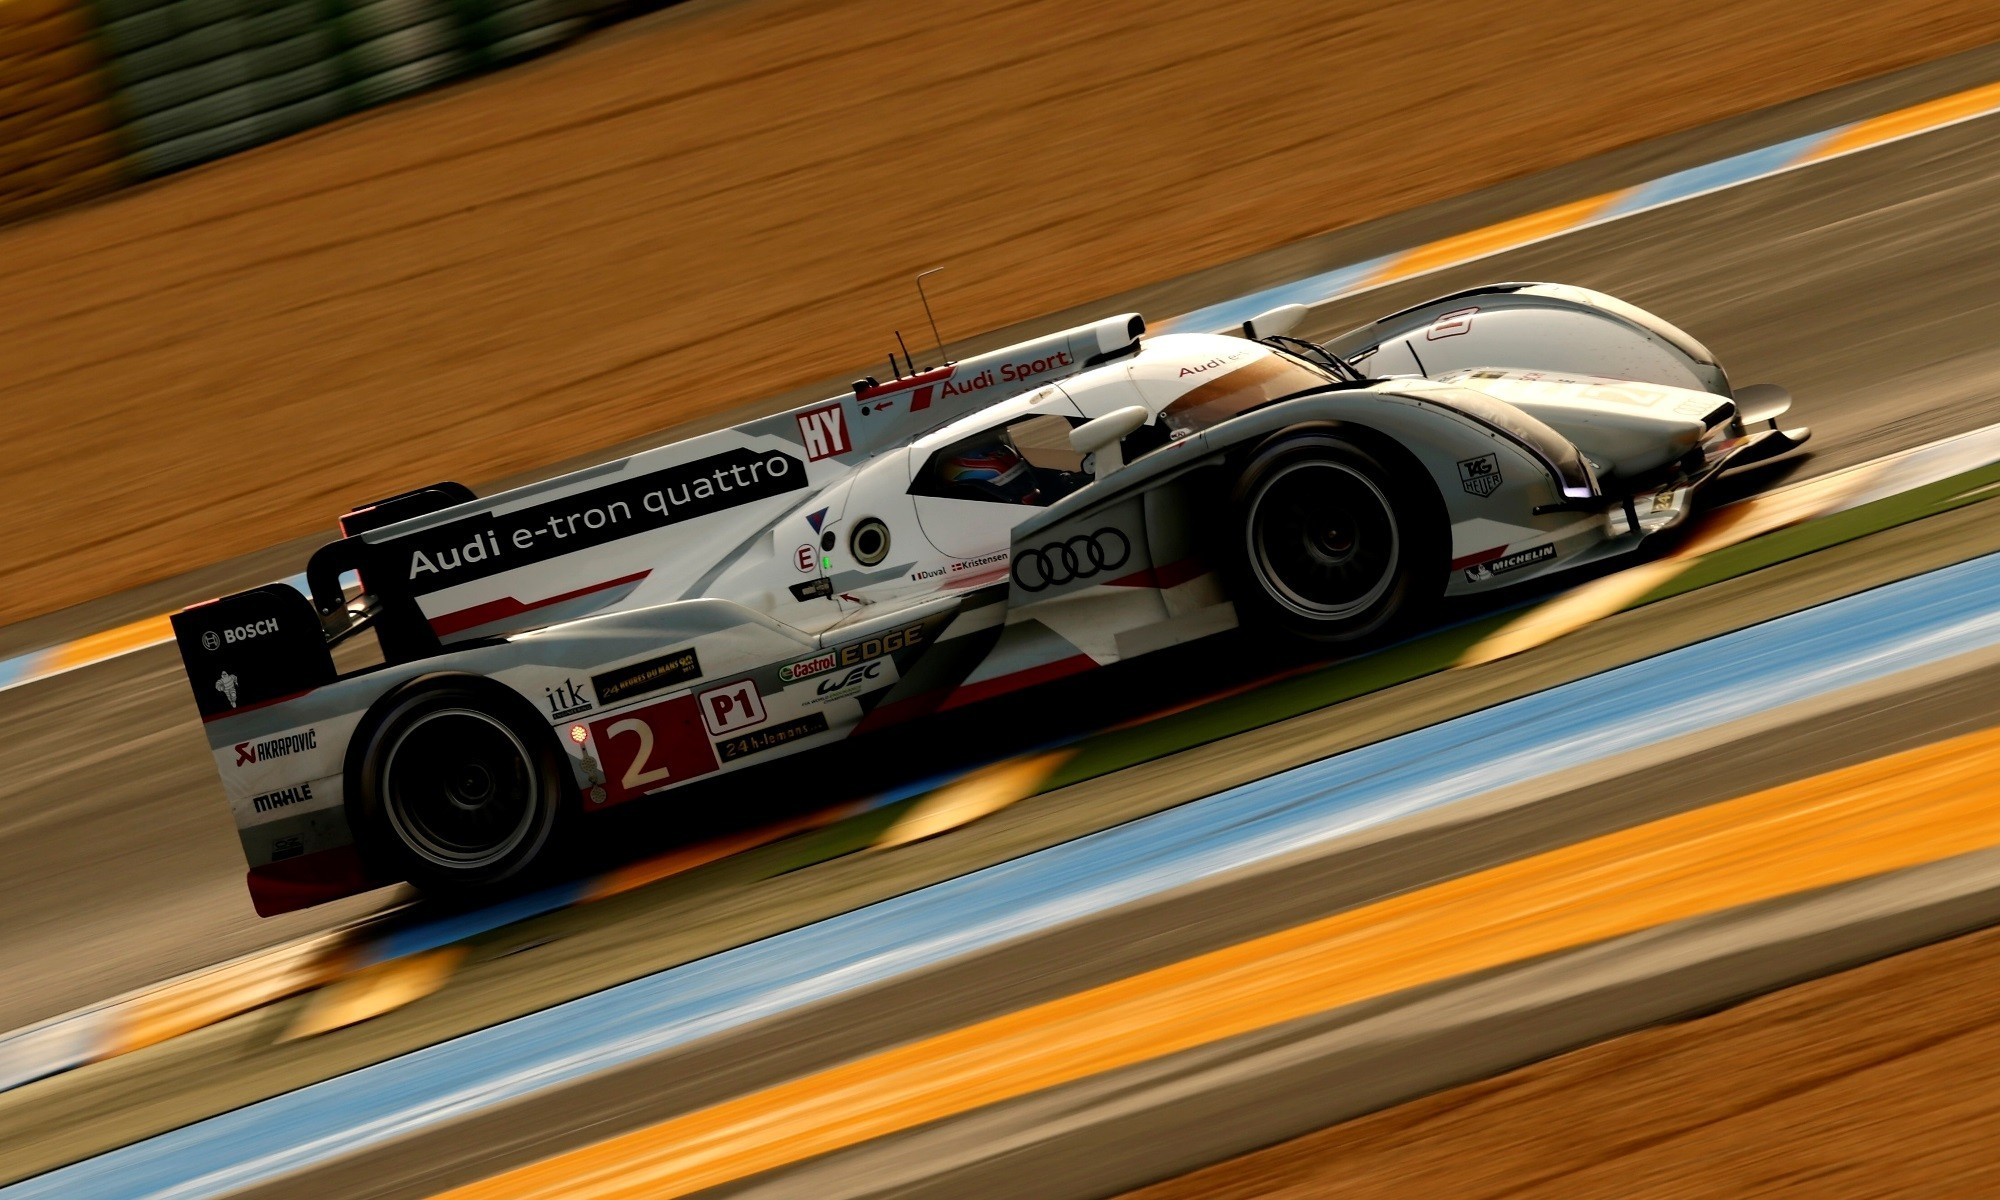 Audi R18 at Le Mans in 2013